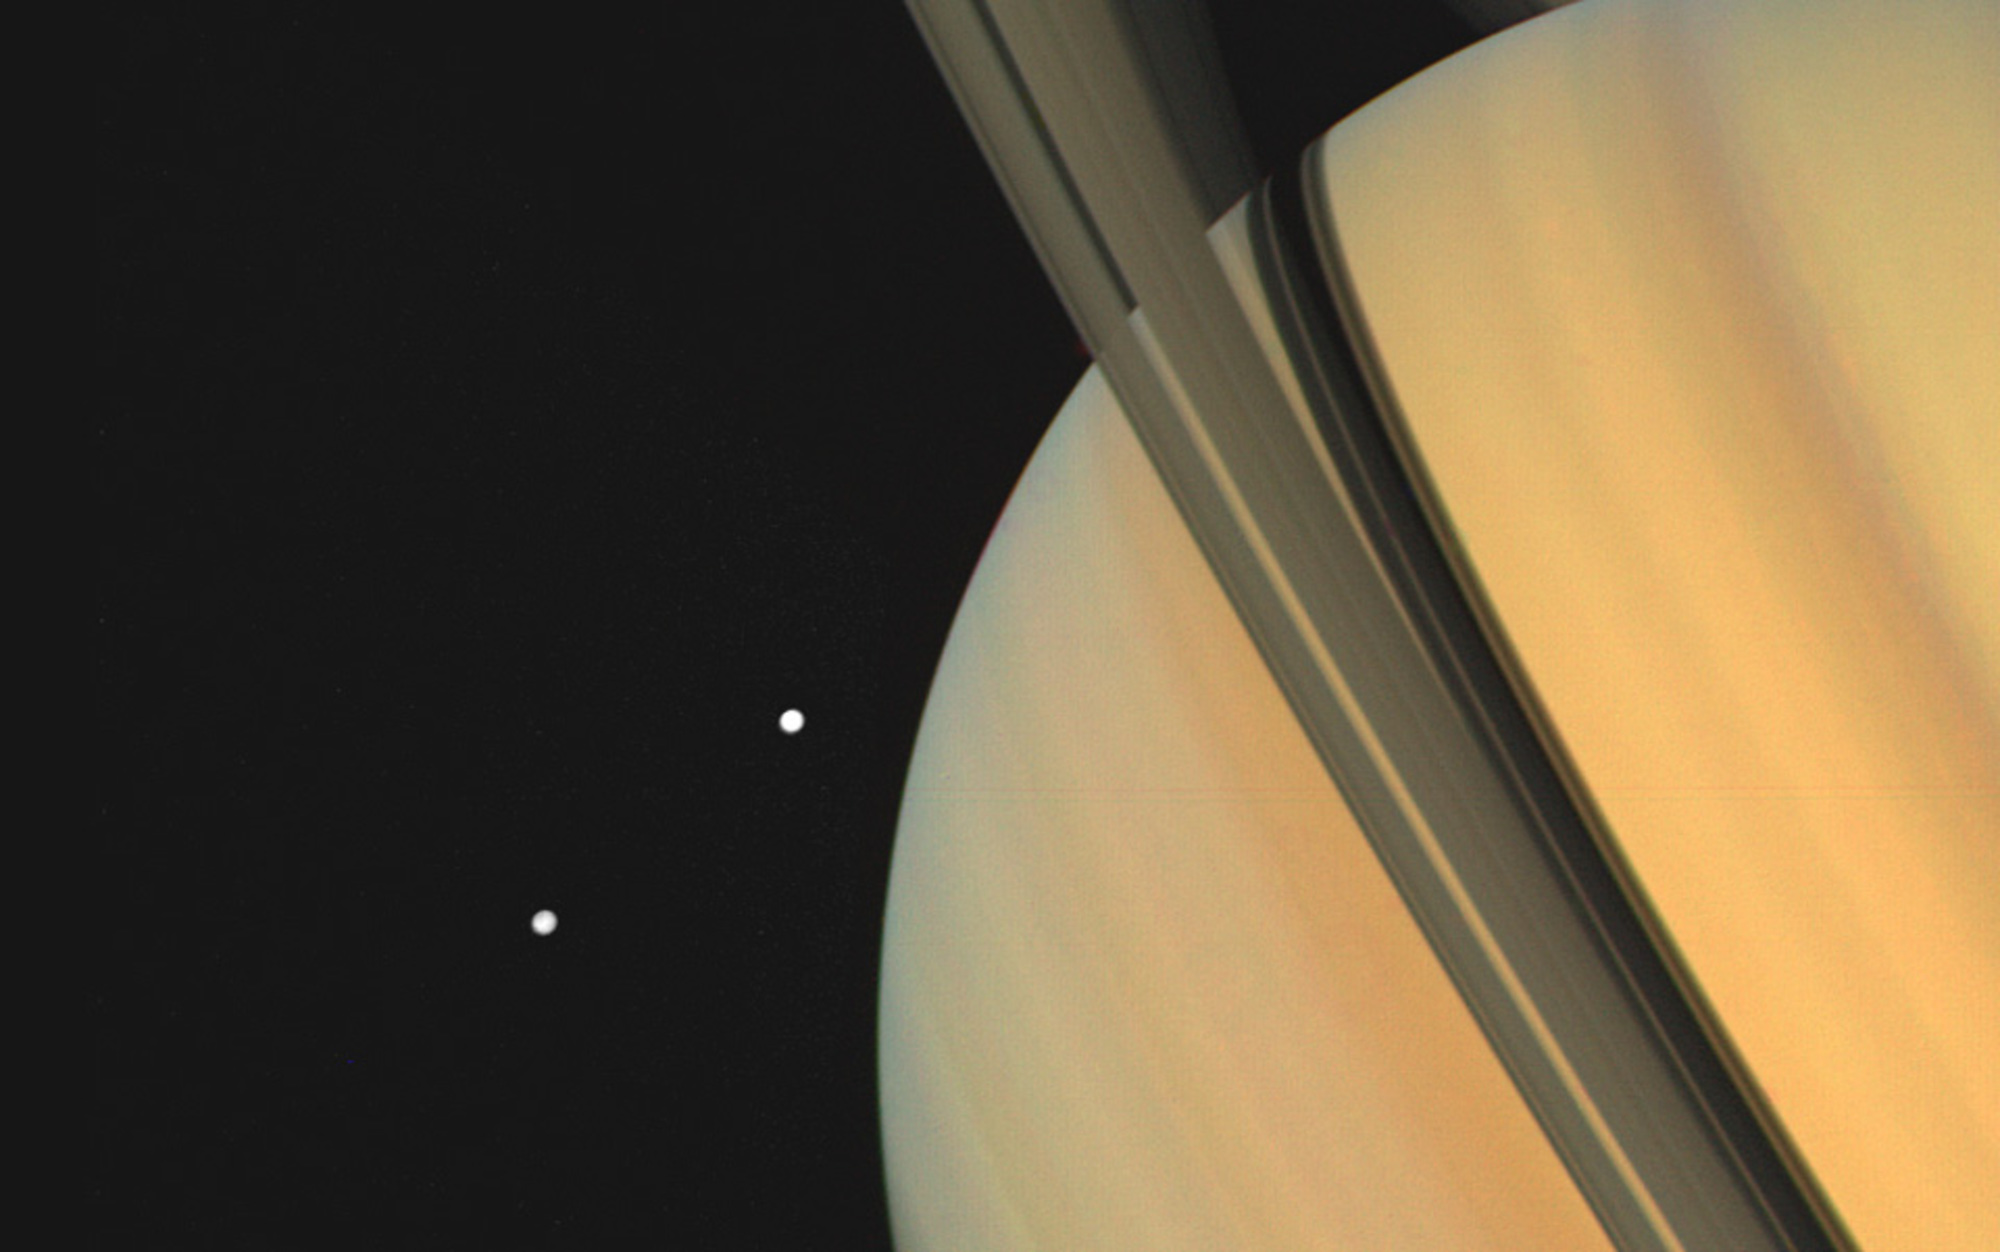 Header saturn with tethys and dione